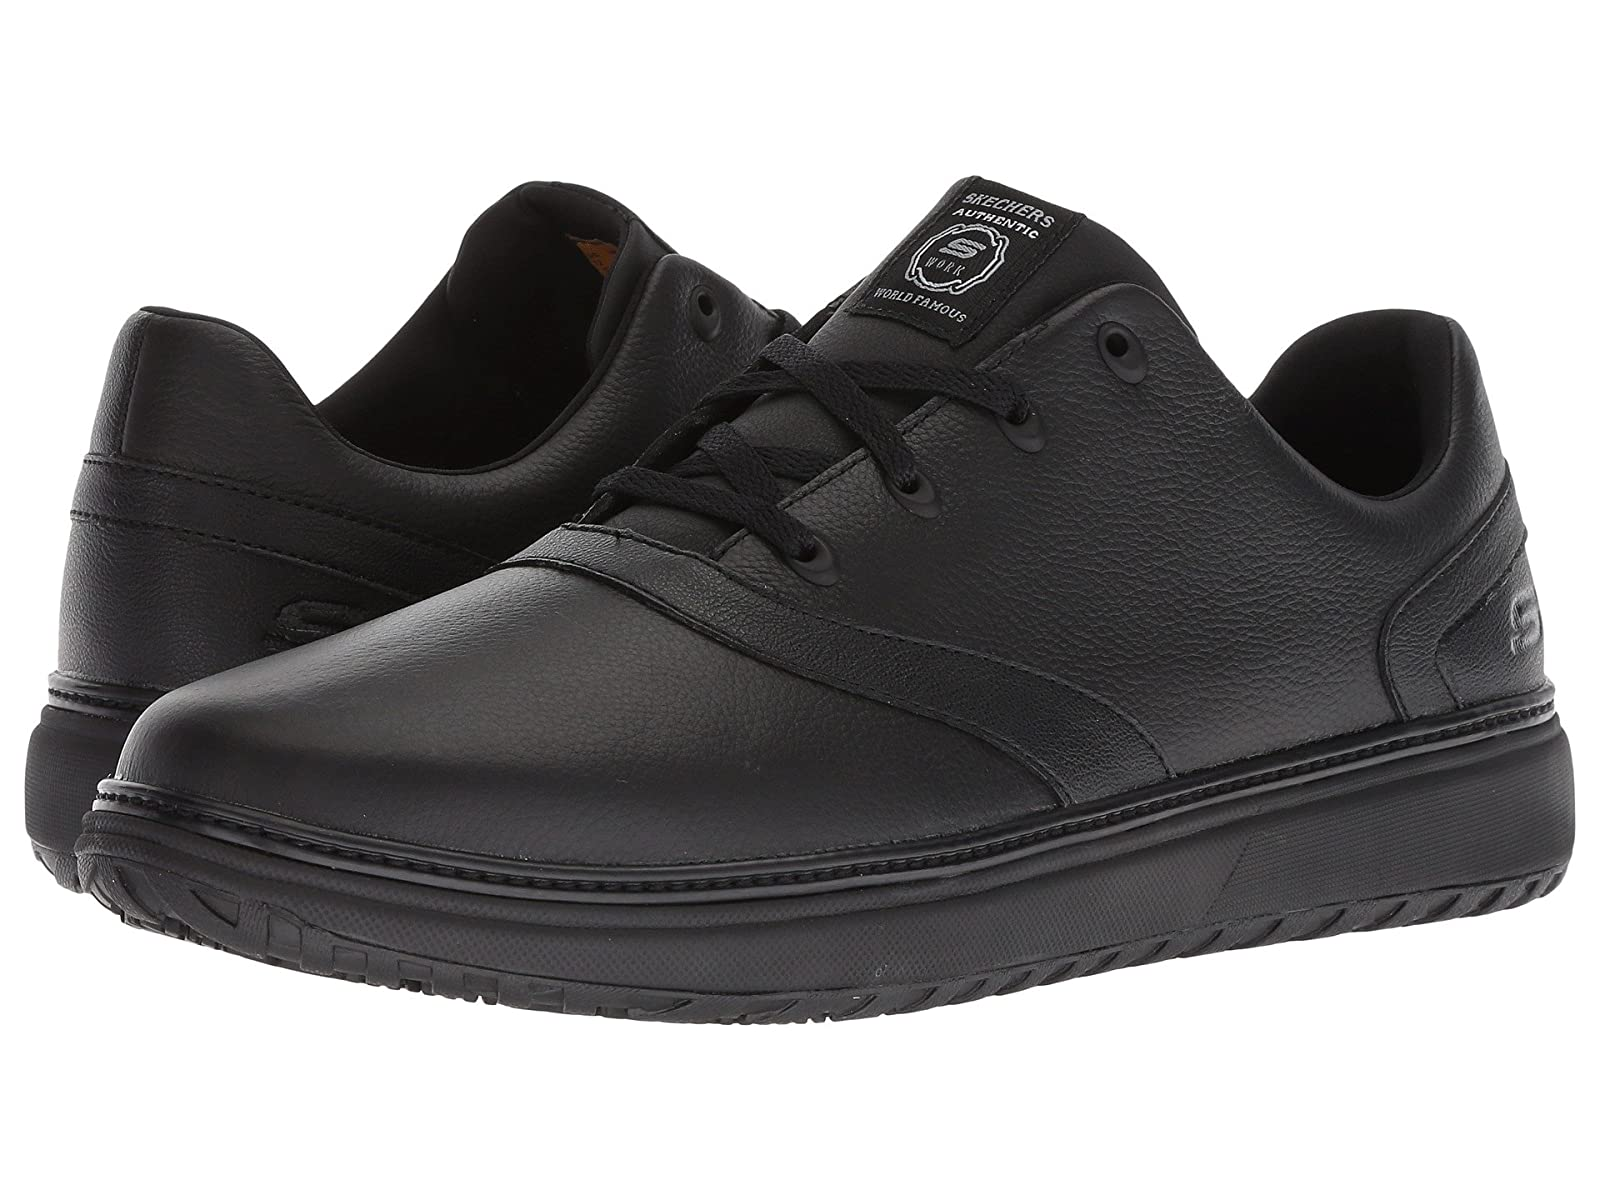 SKECHERS Work Mohall SRAtmospheric grades have affordable shoes